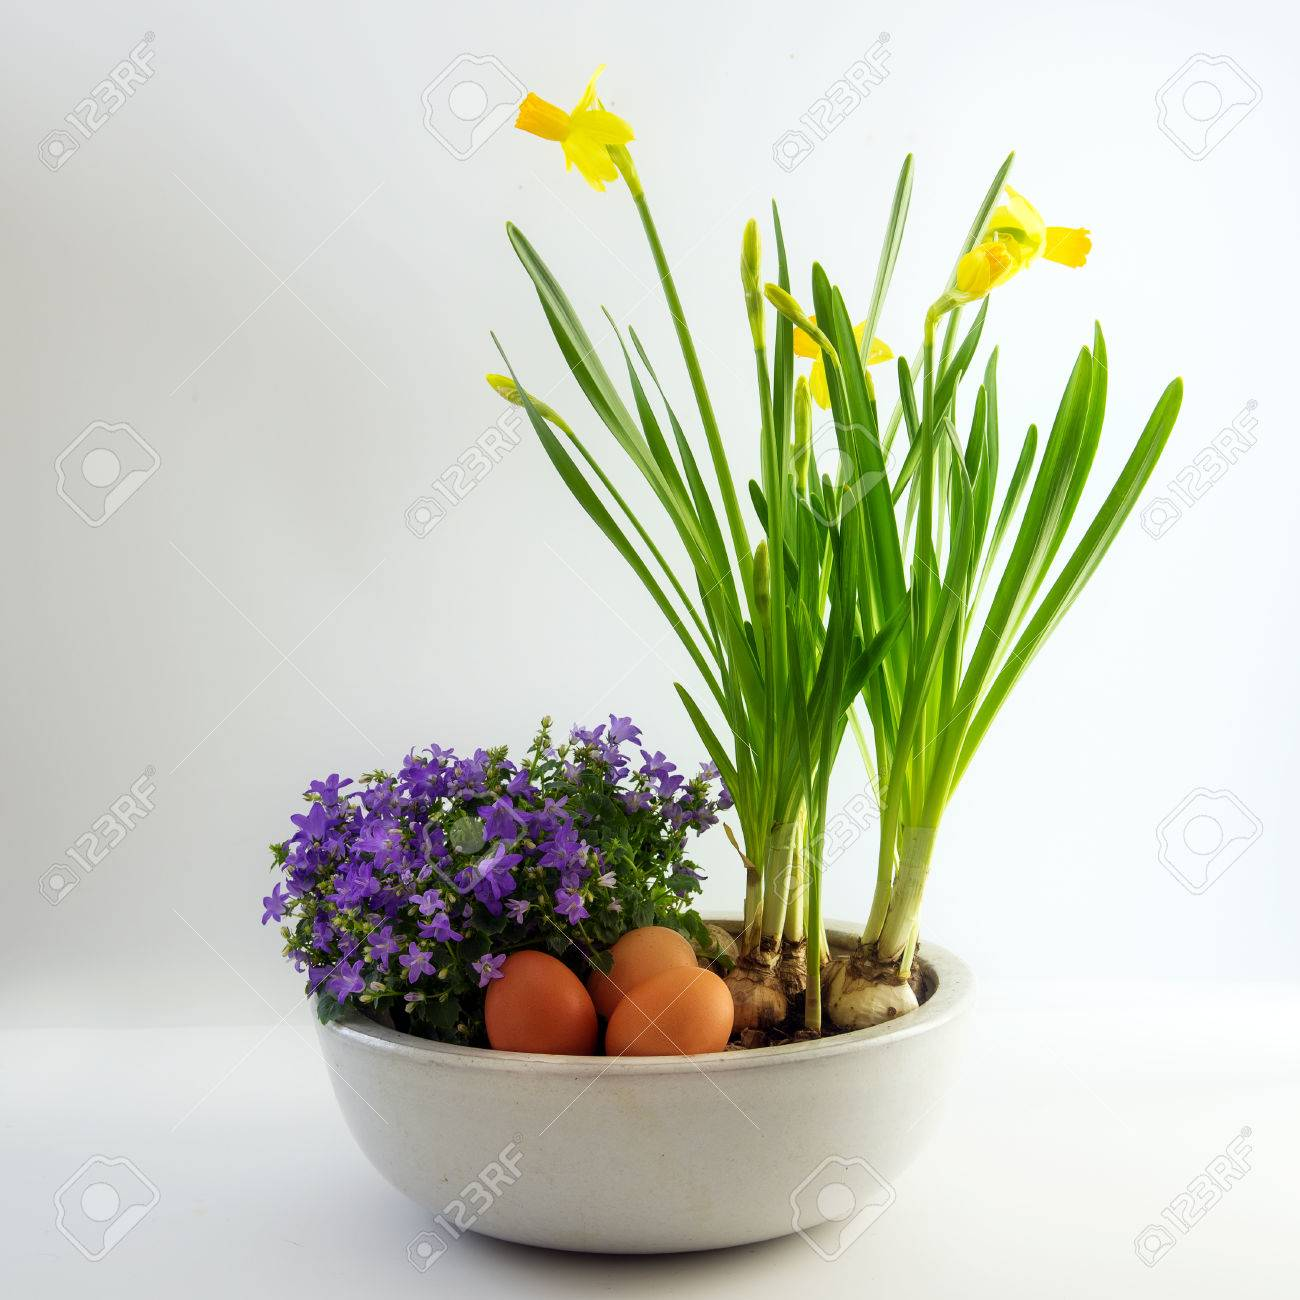 Potted spring flowers and eggs as easter decoration daffodils potted spring flowers and eggs as easter decoration daffodils and bluebells bright gray background mightylinksfo